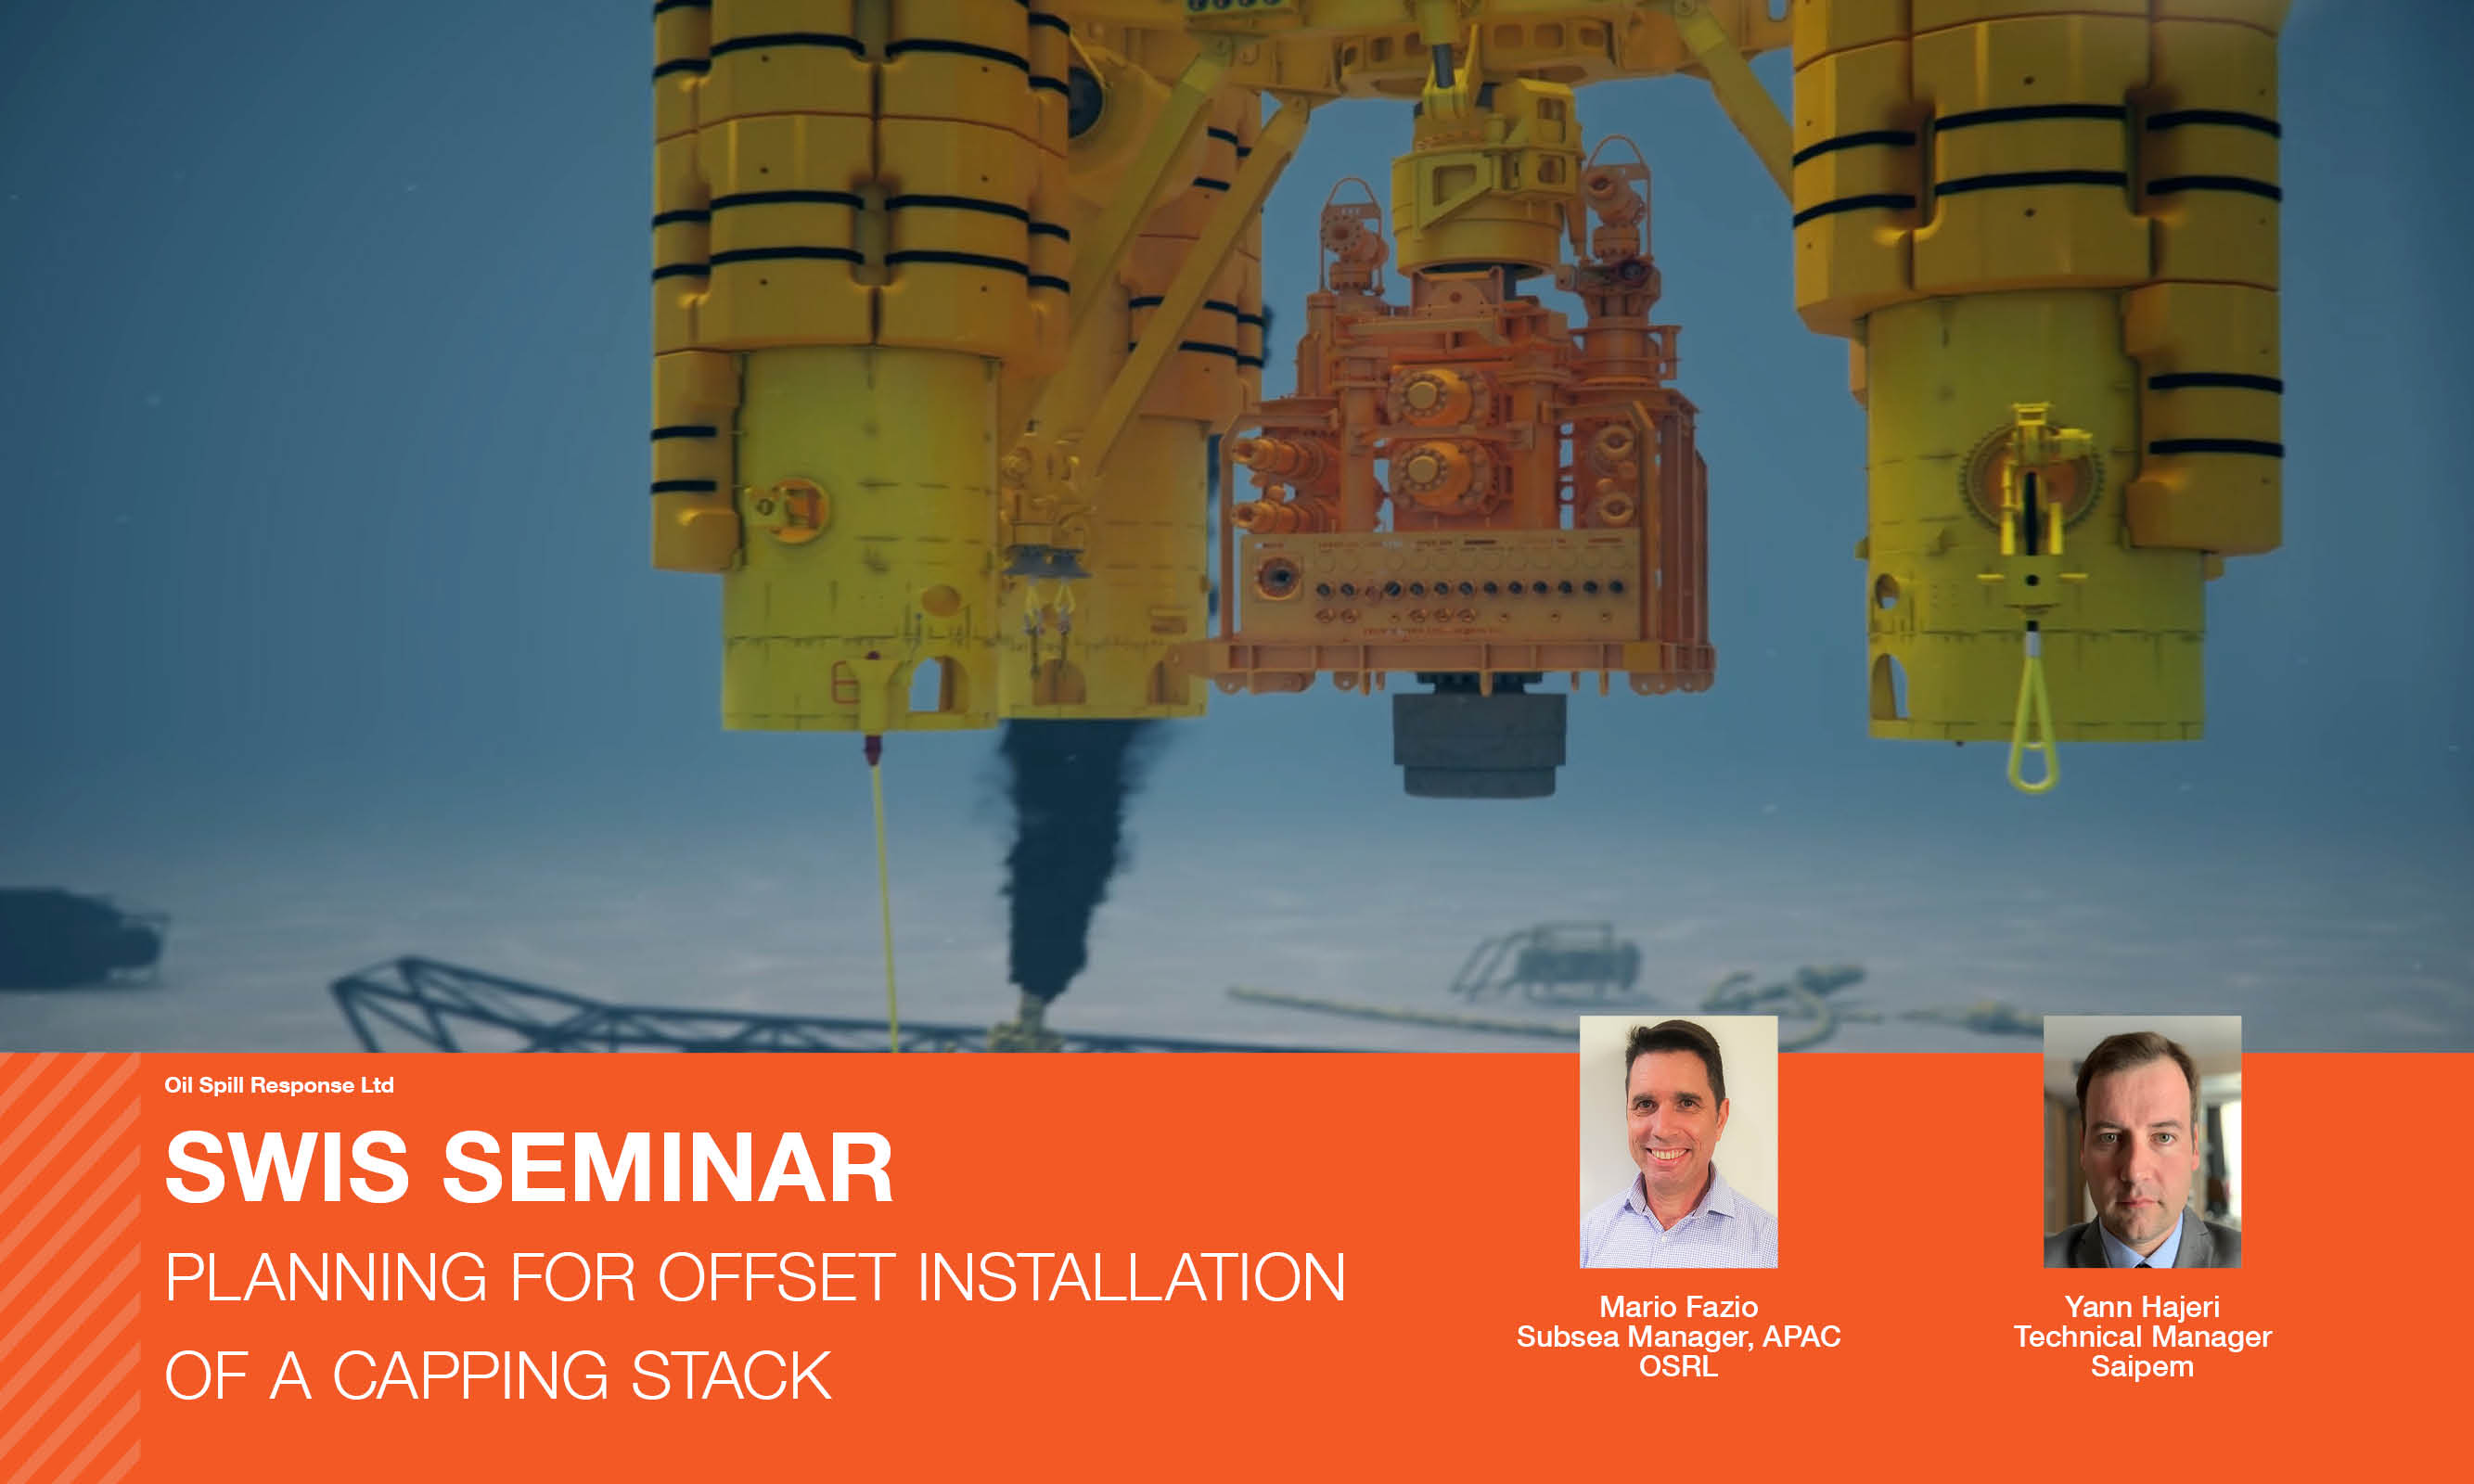 Seminar Slides: Planning for Offset Installation of a Capping Stack